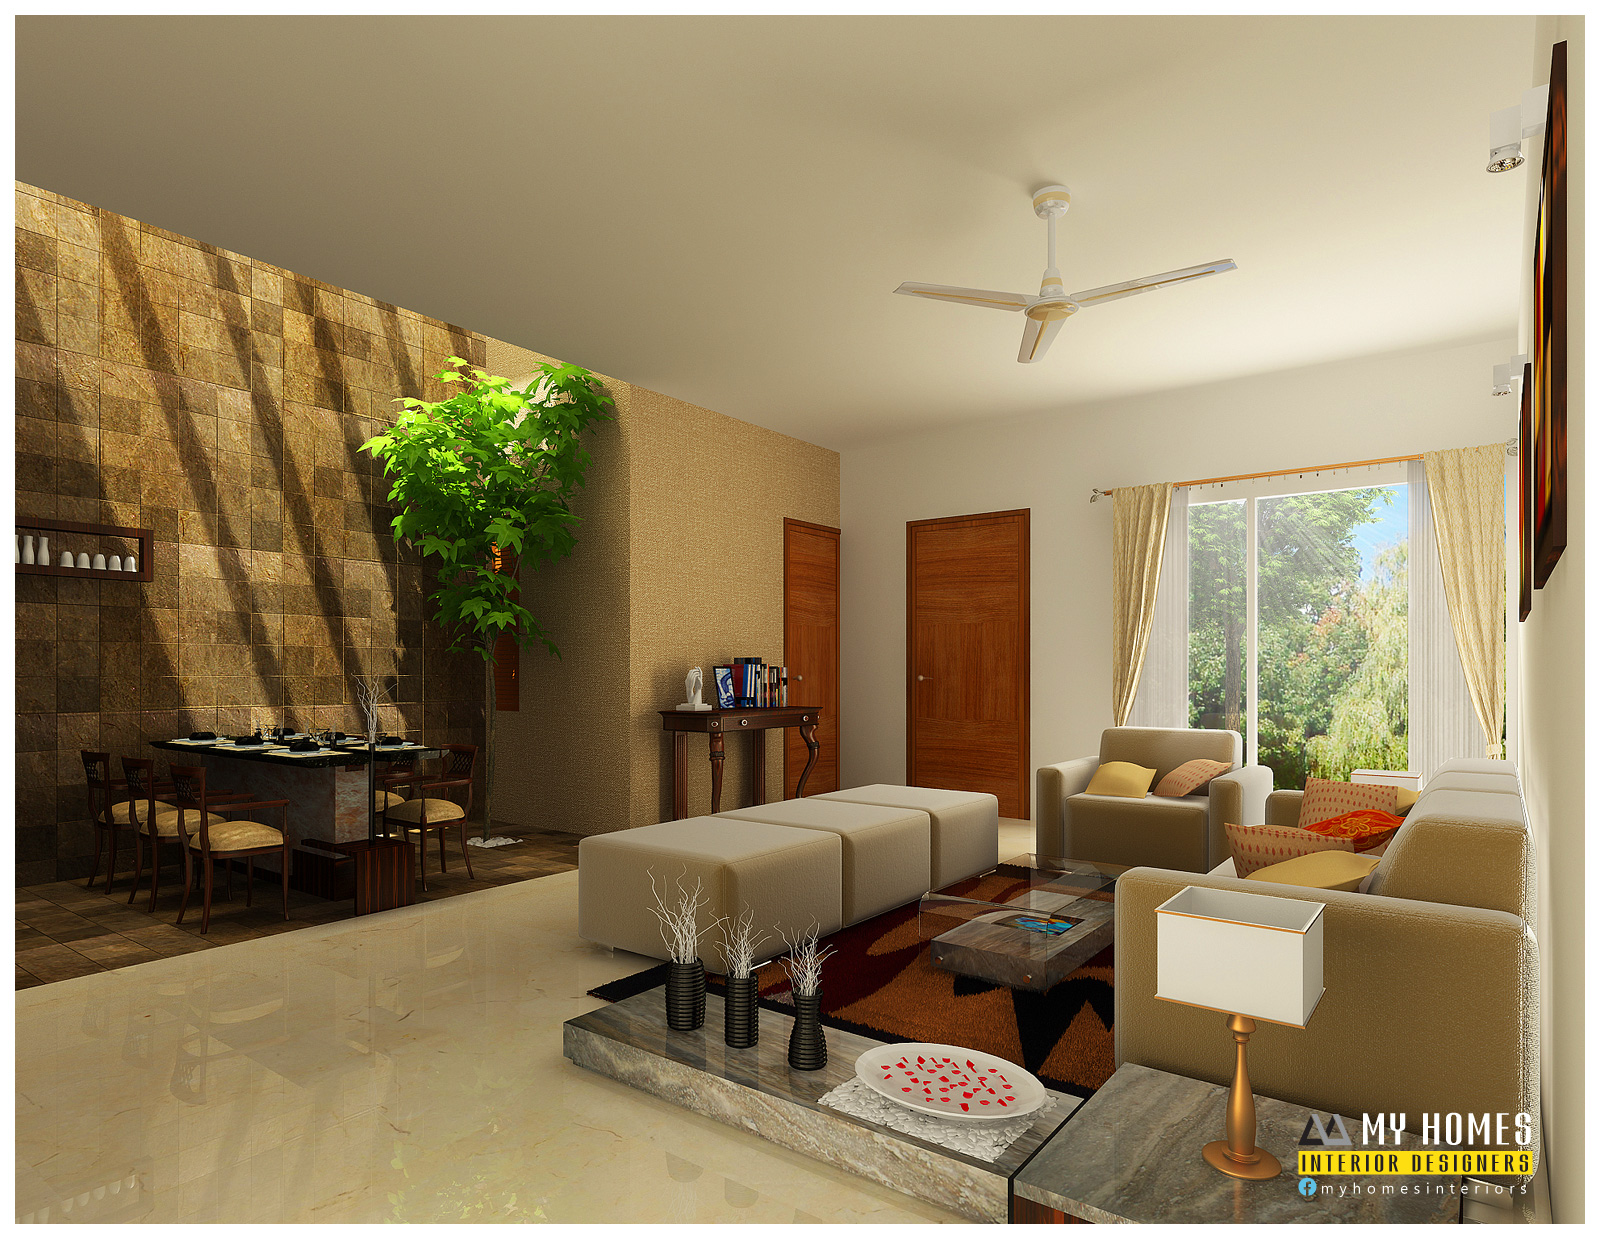 Kerala interior design ideas from designing company thrissur for Interior design ideas